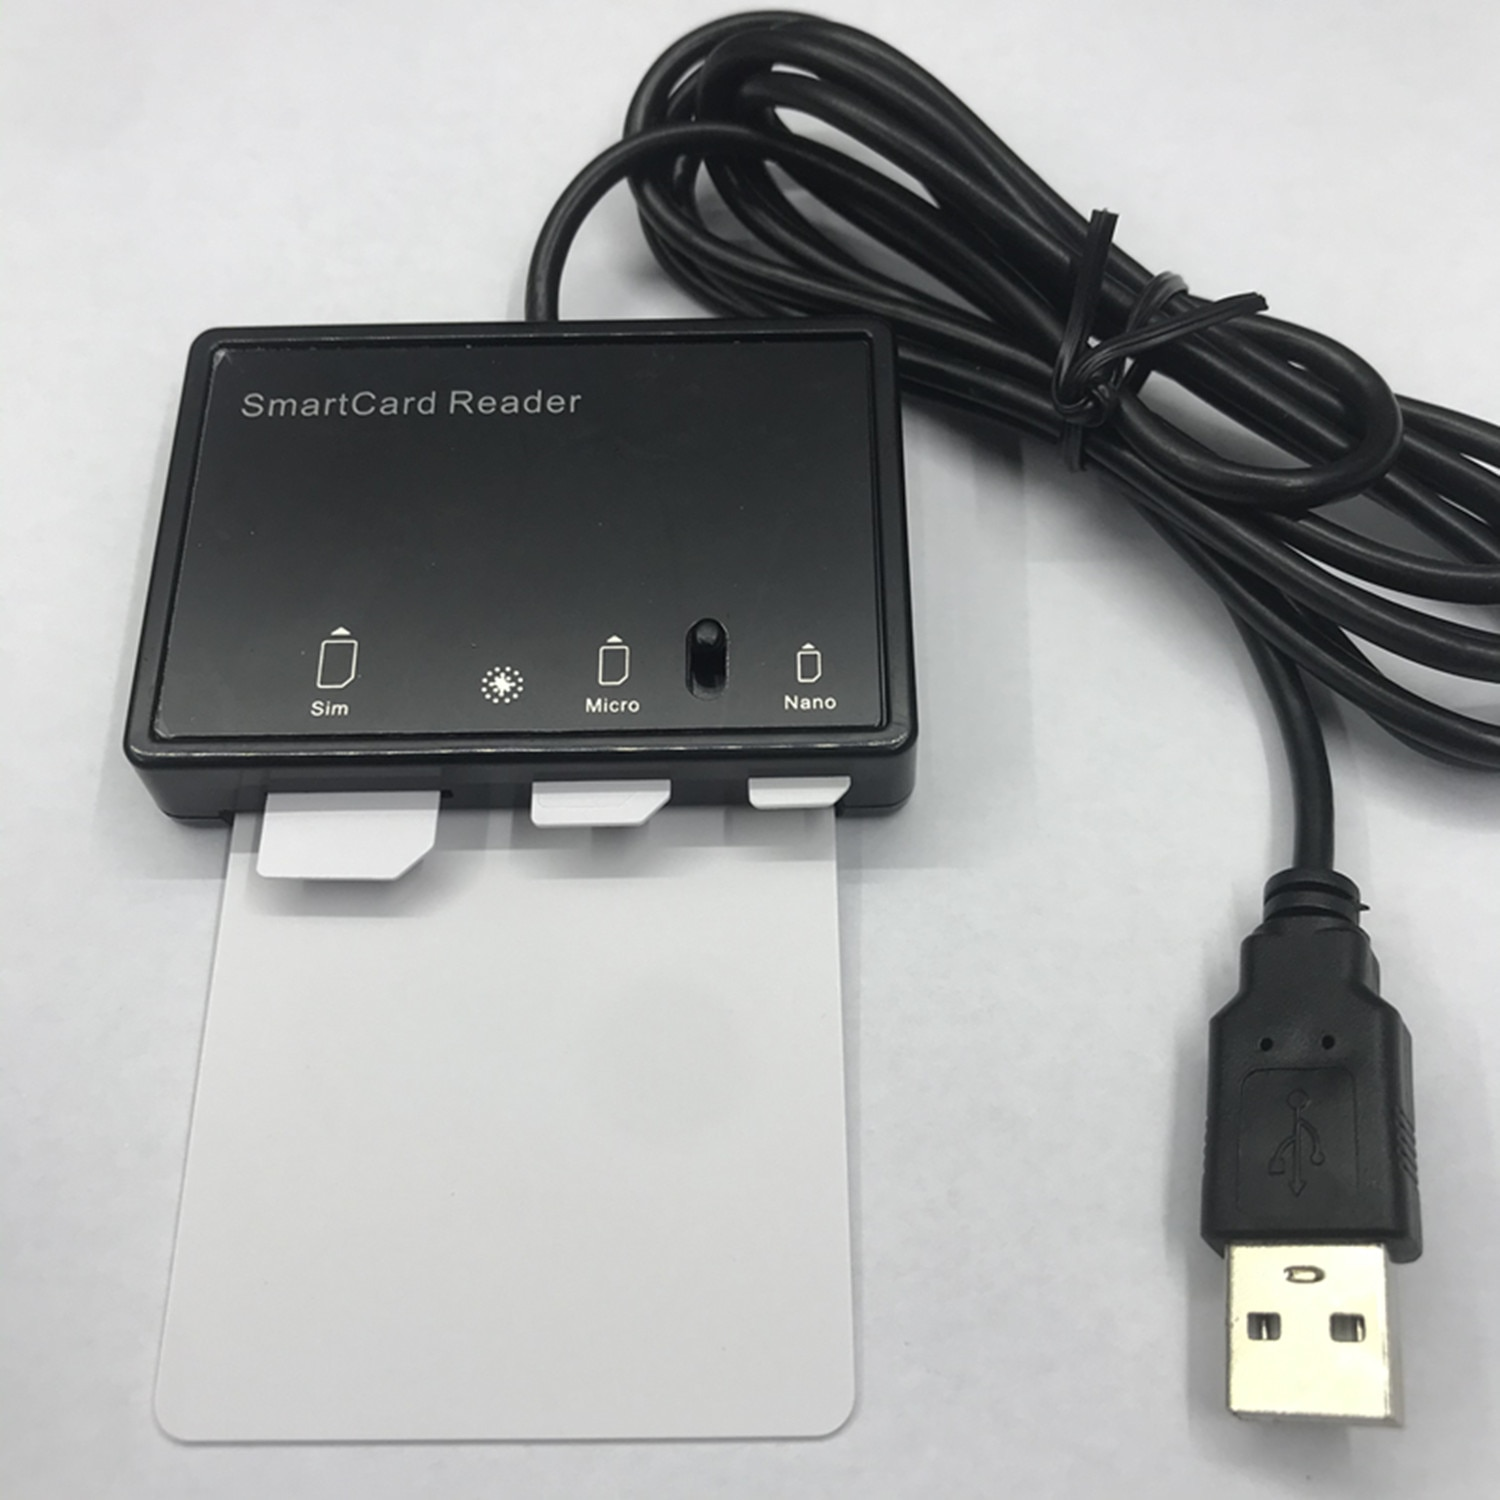 OYEITIMES LTE WCDMA ICCID SIM USIM 4G Card Reader Writer Programmer With 5pcs Blank Programable Card +SIM Personalize Tools enlarge